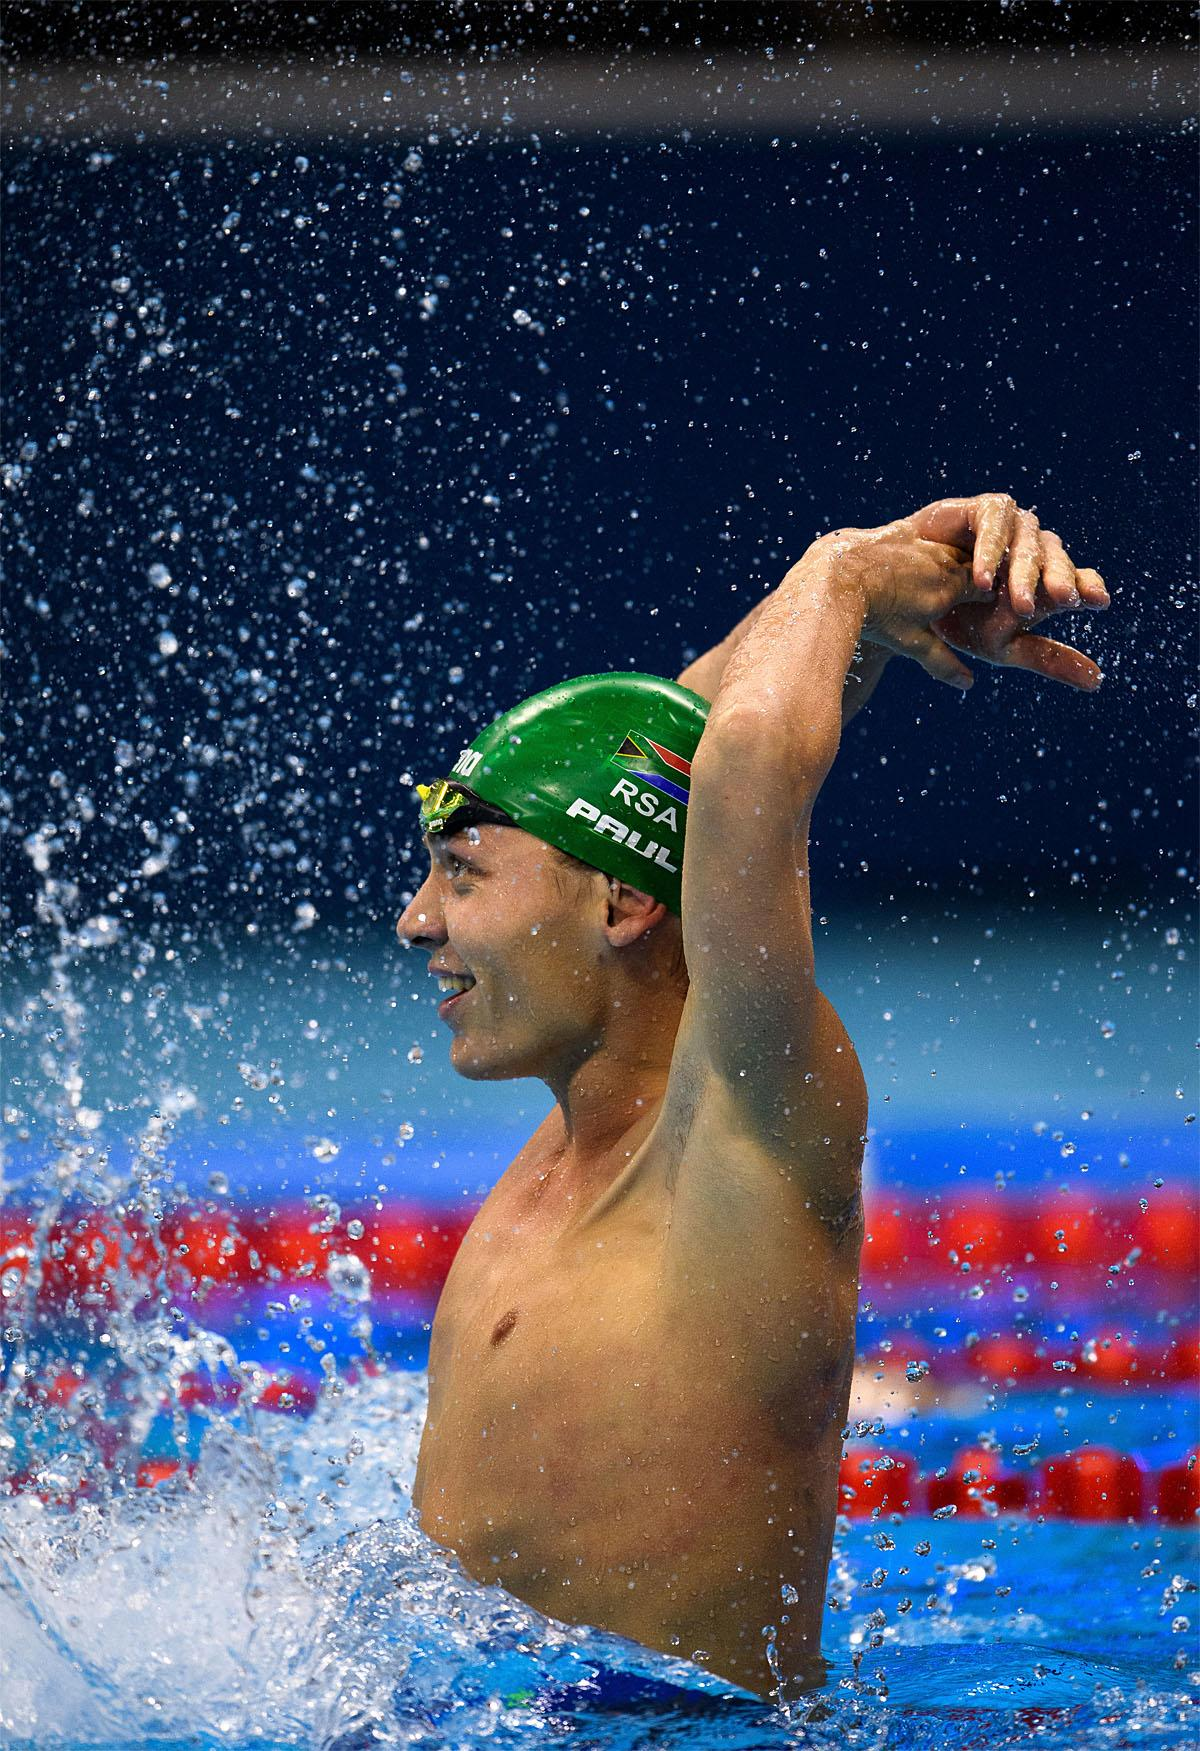 In this photo provided by the IOC, South Africa's Kevin Paul celebrates winning the men's 100-meter breaststroke - SB9 swimming final of the Paralympic Games in Rio de Janeiro, Brazil, Thursday, Sept. 8, 2016. (Bob Martin/OIS, IOC via AP)